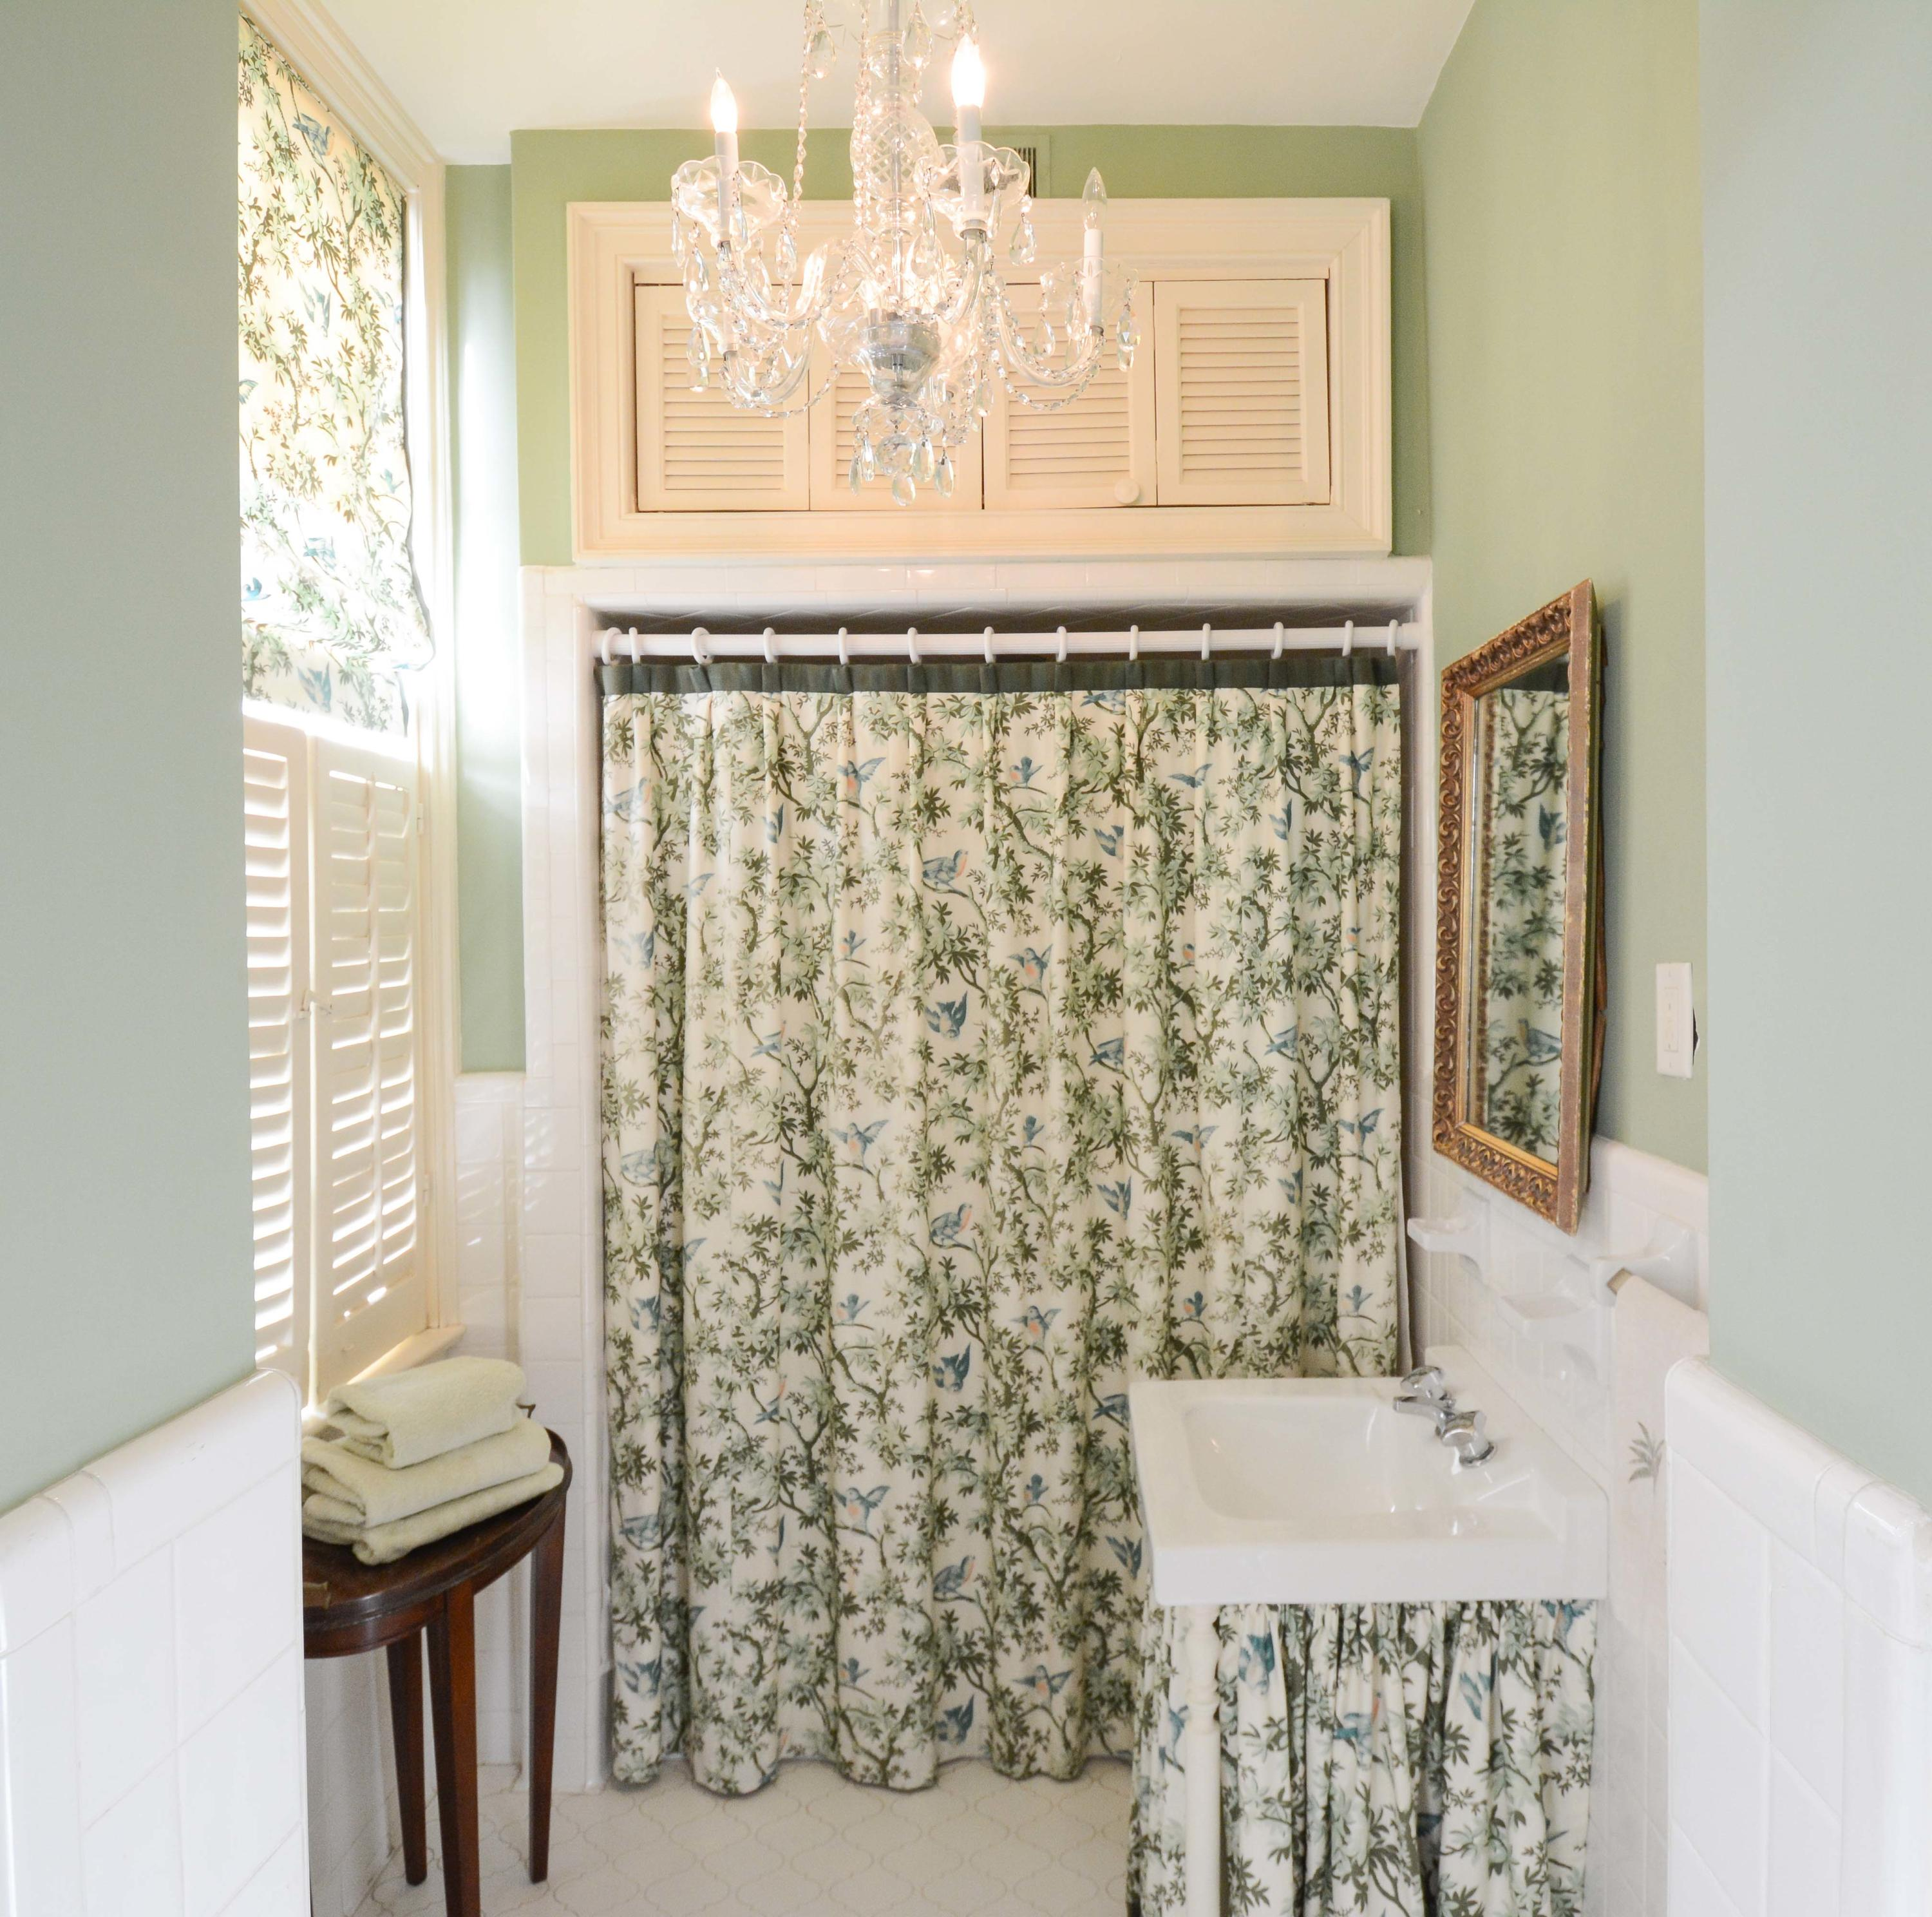 South of Broad Homes For Sale - 69 Church, Charleston, SC - 64